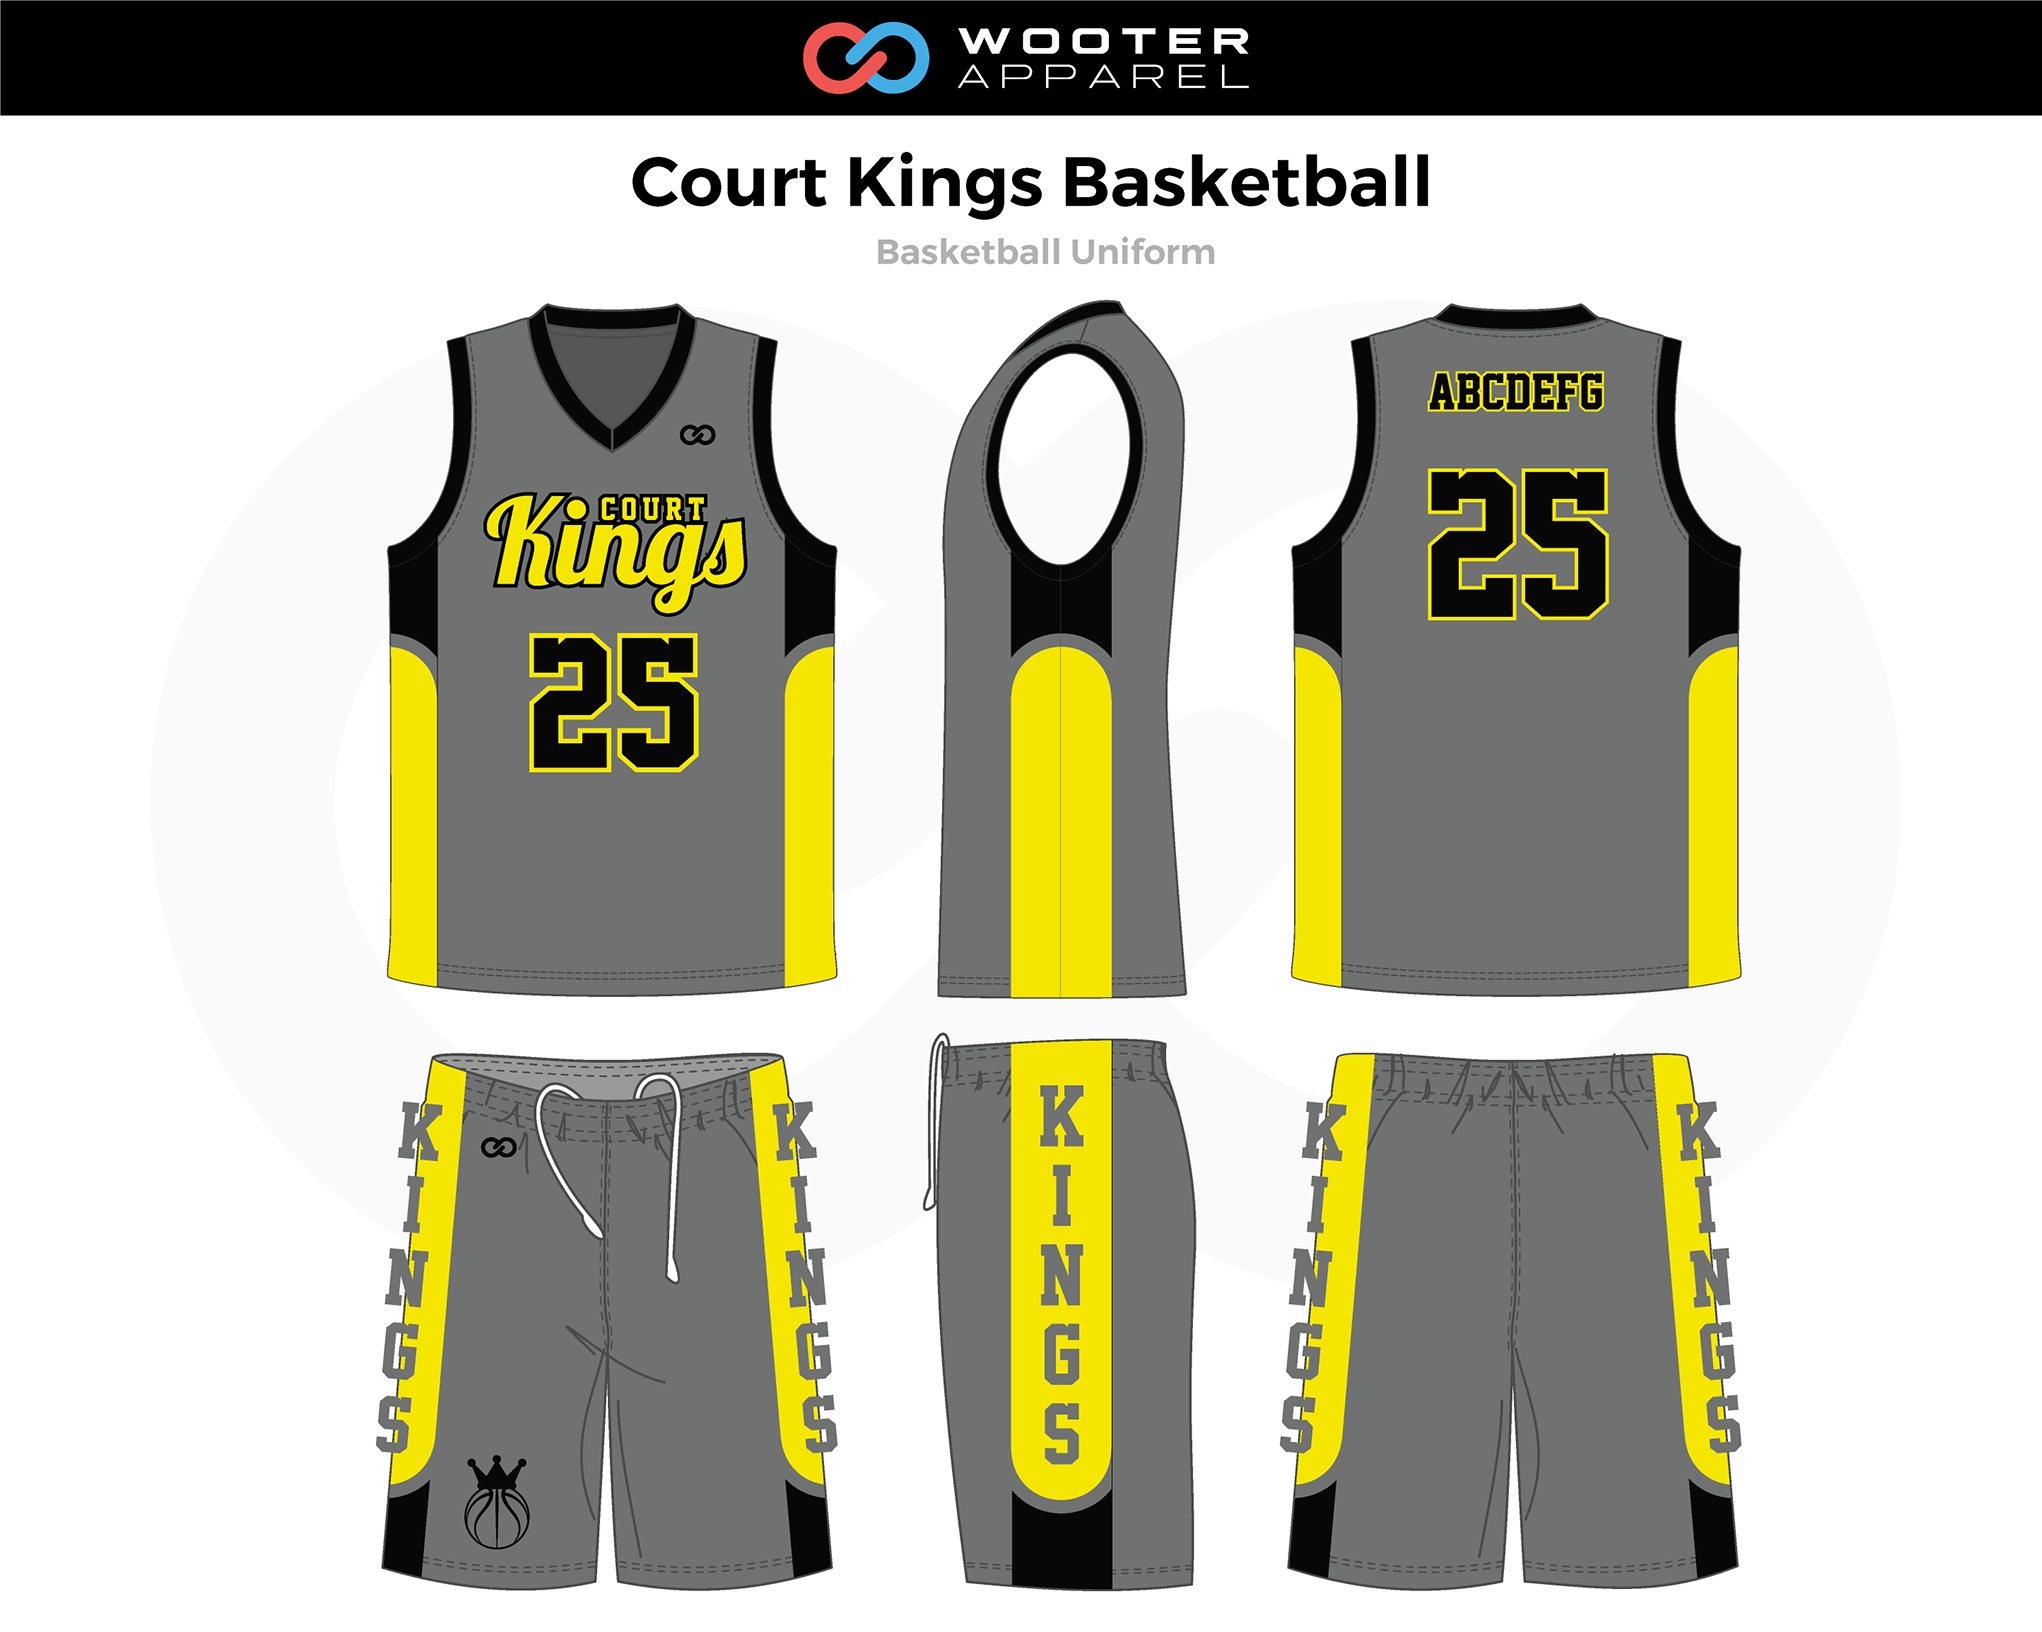 COURT KINGS Gray Yellow Black Basketball Uniform, Jersey and Shorts